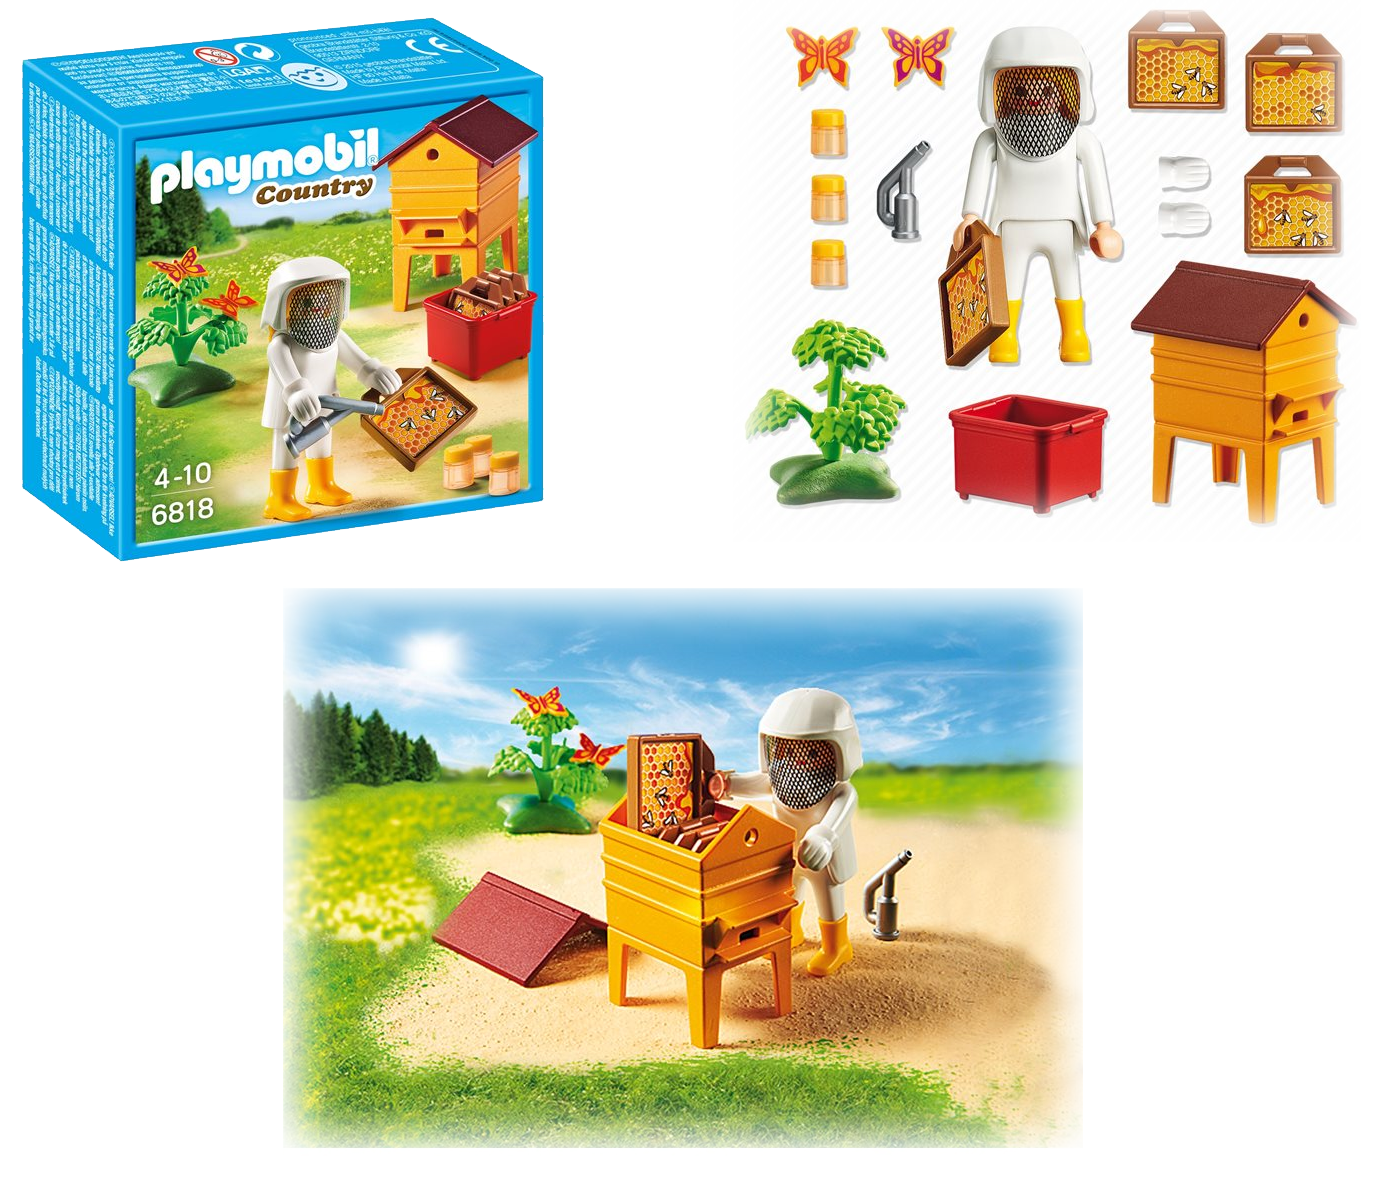 00RE69 Apicultrice PlayMobil (jouet)